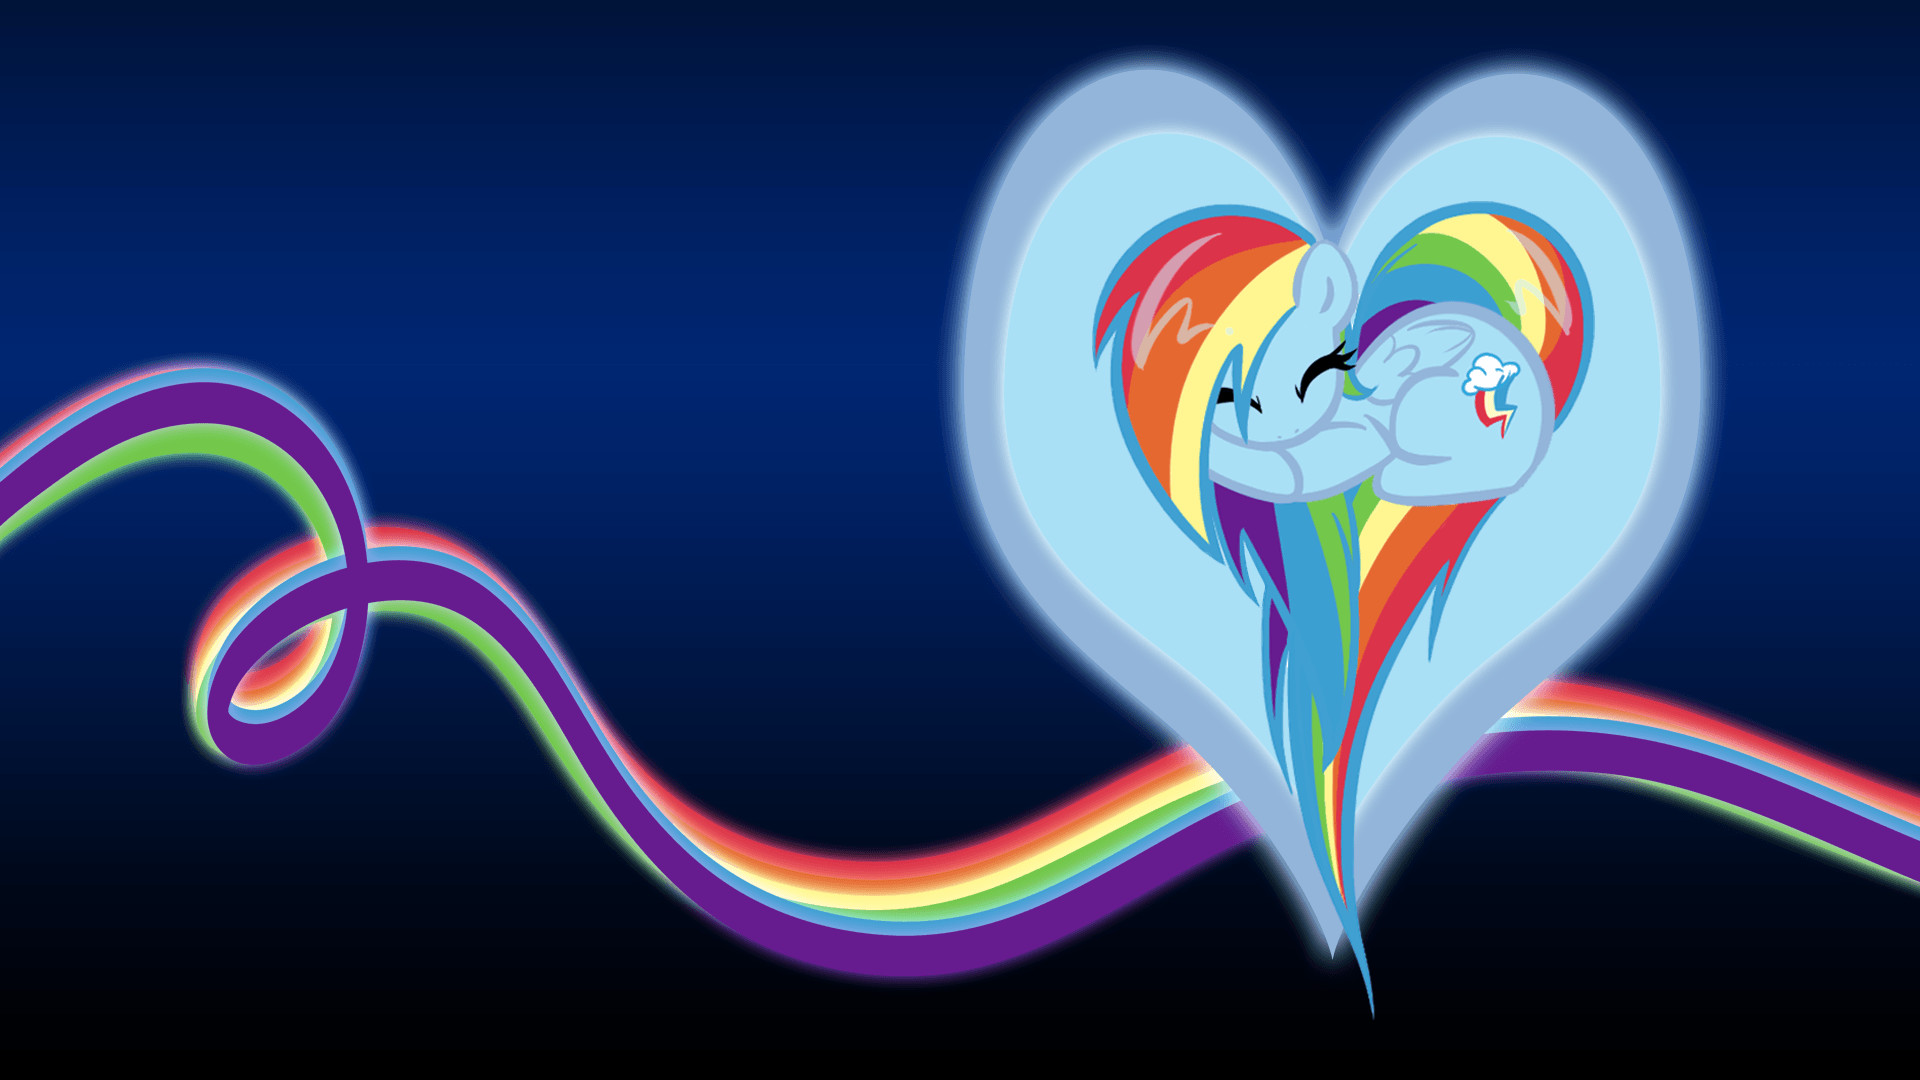 Cars 2 Cartoon Wallpaper My Little Pony Rainbow Dash Wallpaper 82 Images